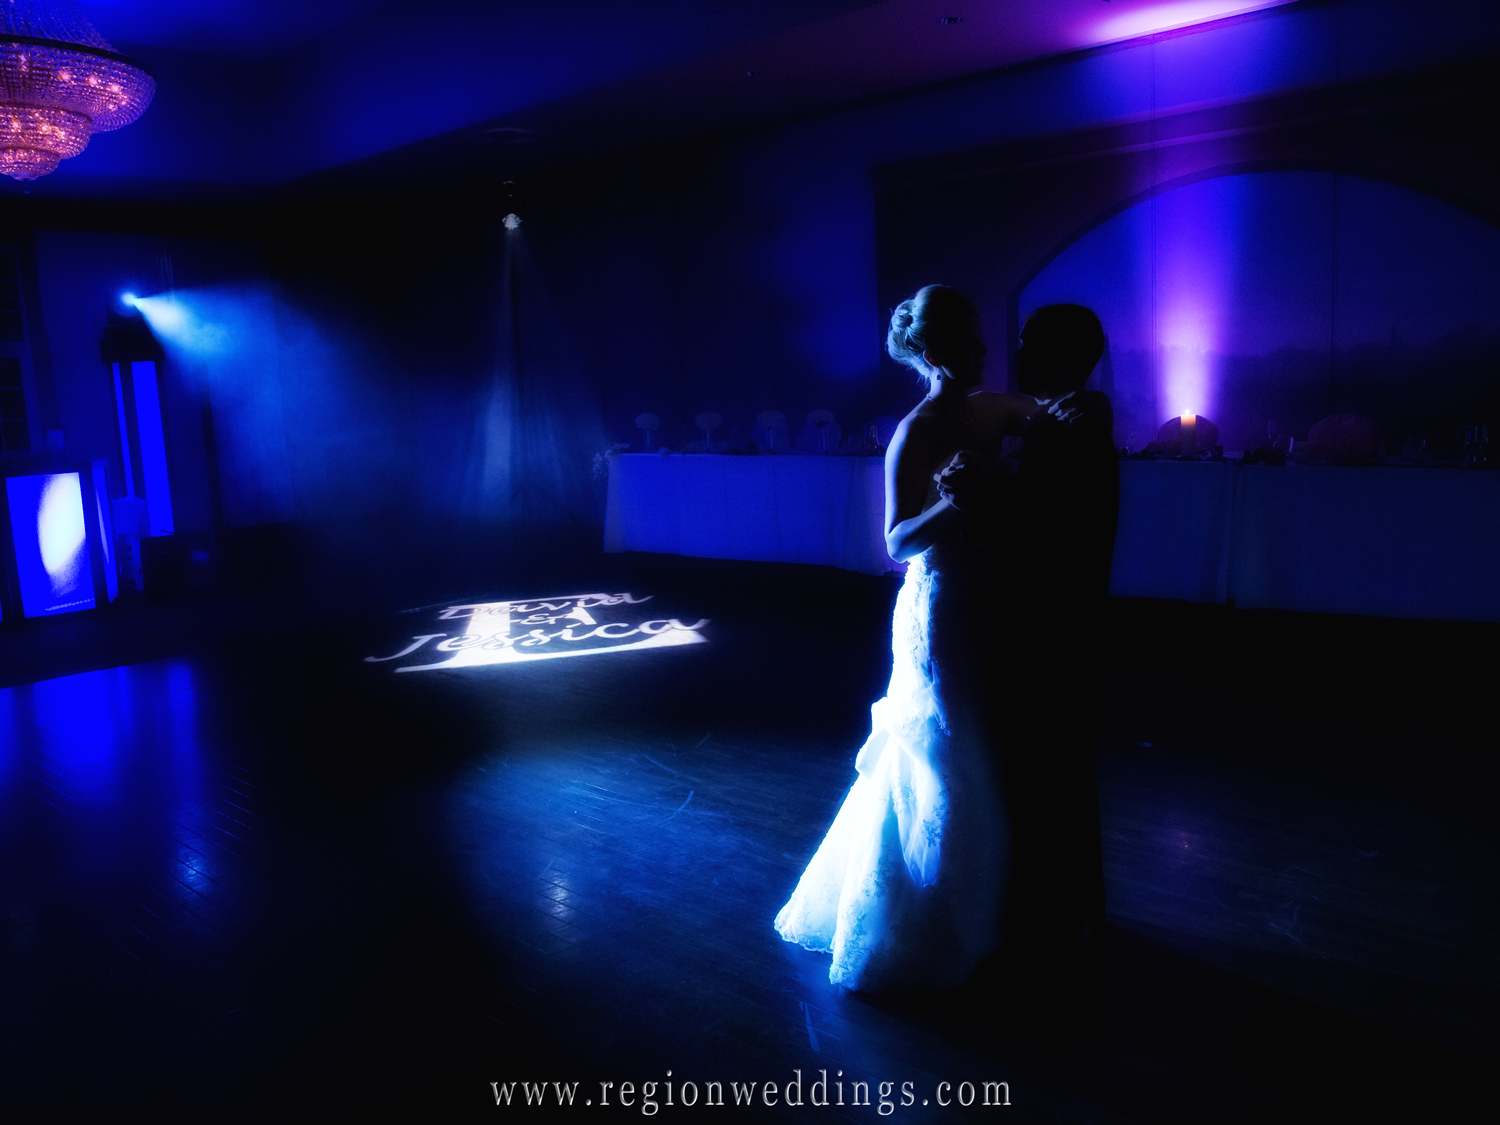 A couple dances alone in the dark at Avalon Manor in Hobart, Indiana for their Fall wedding reception.